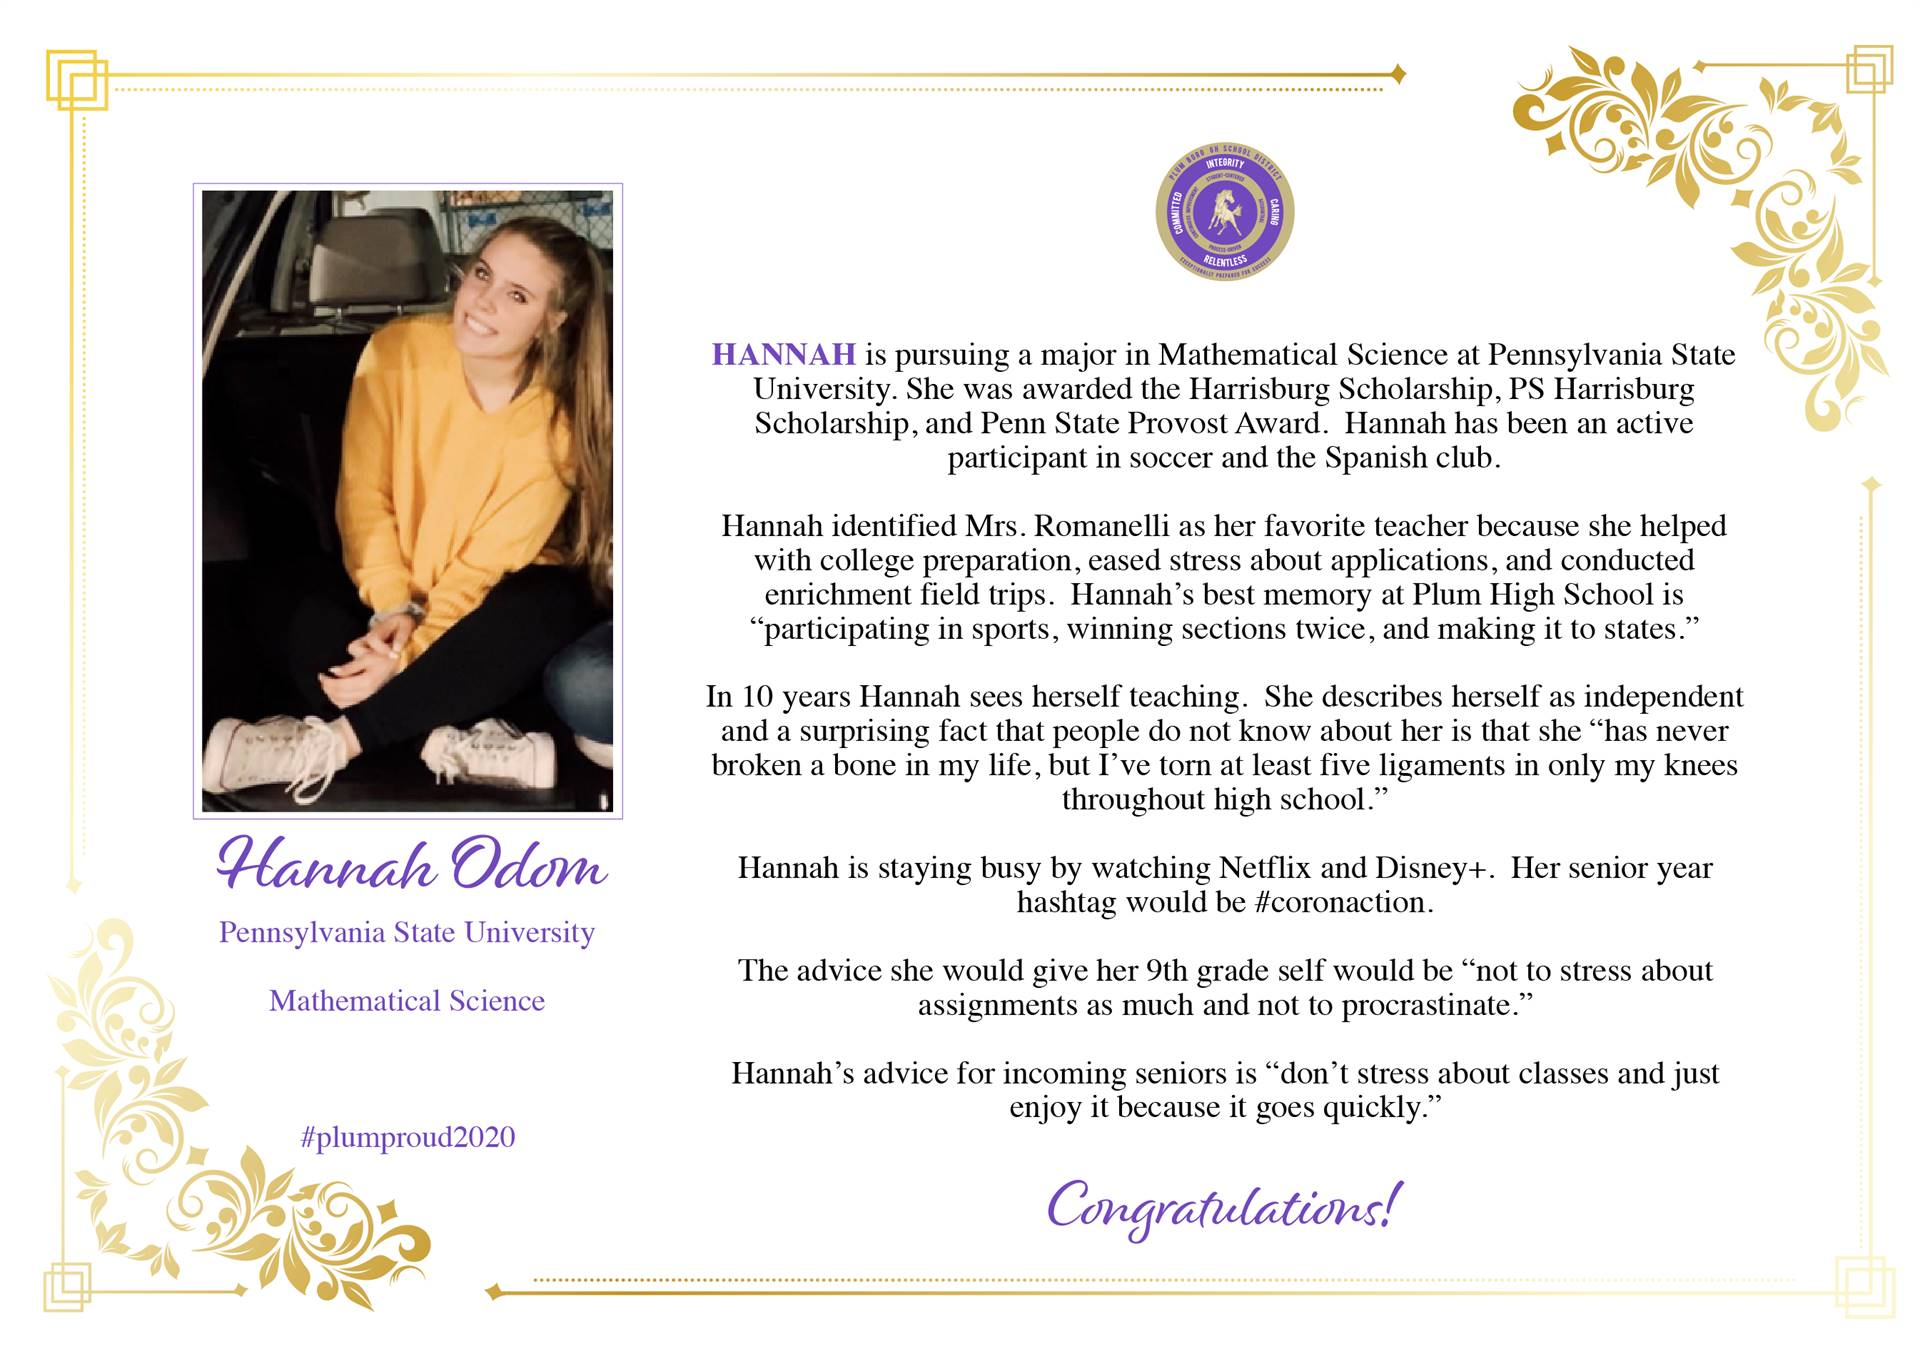 Senior Shout Out to Hannah Odom